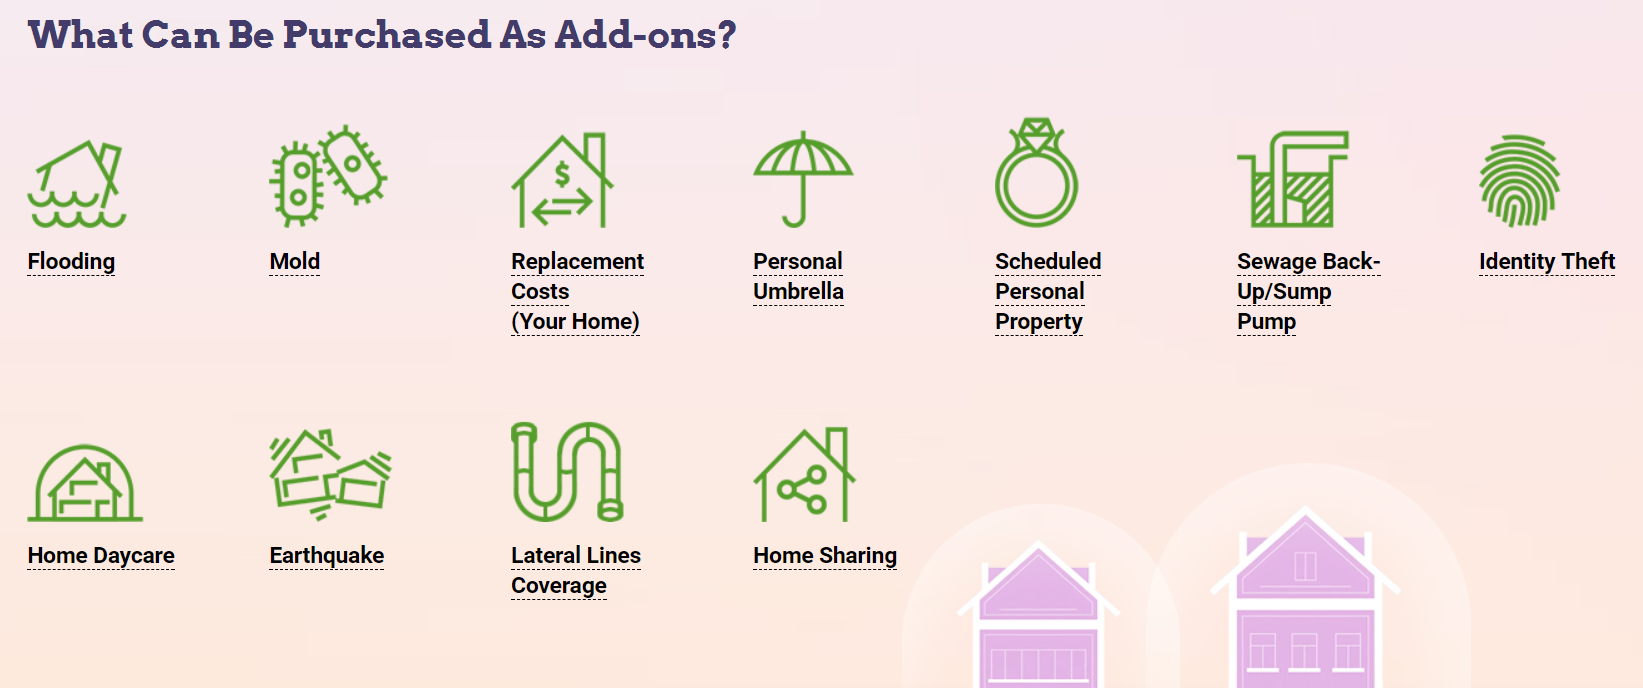 home insurance optional coverage add-ons